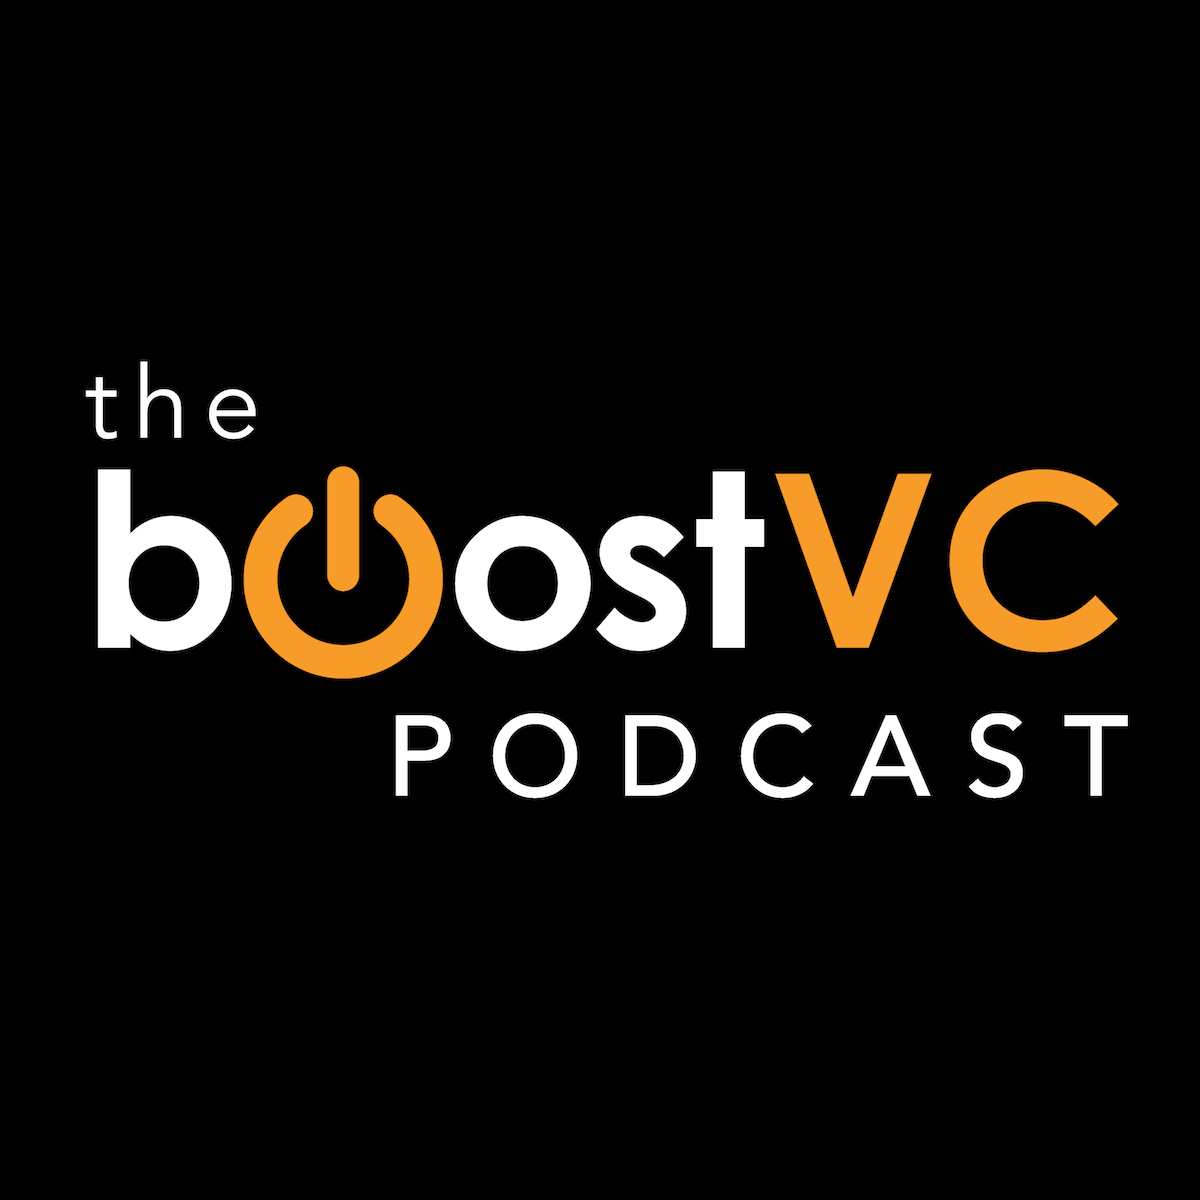 Dive into today's hottest topics like blockchain, VR and venture capital with Adam Draper, founder and managing director of Boost VC